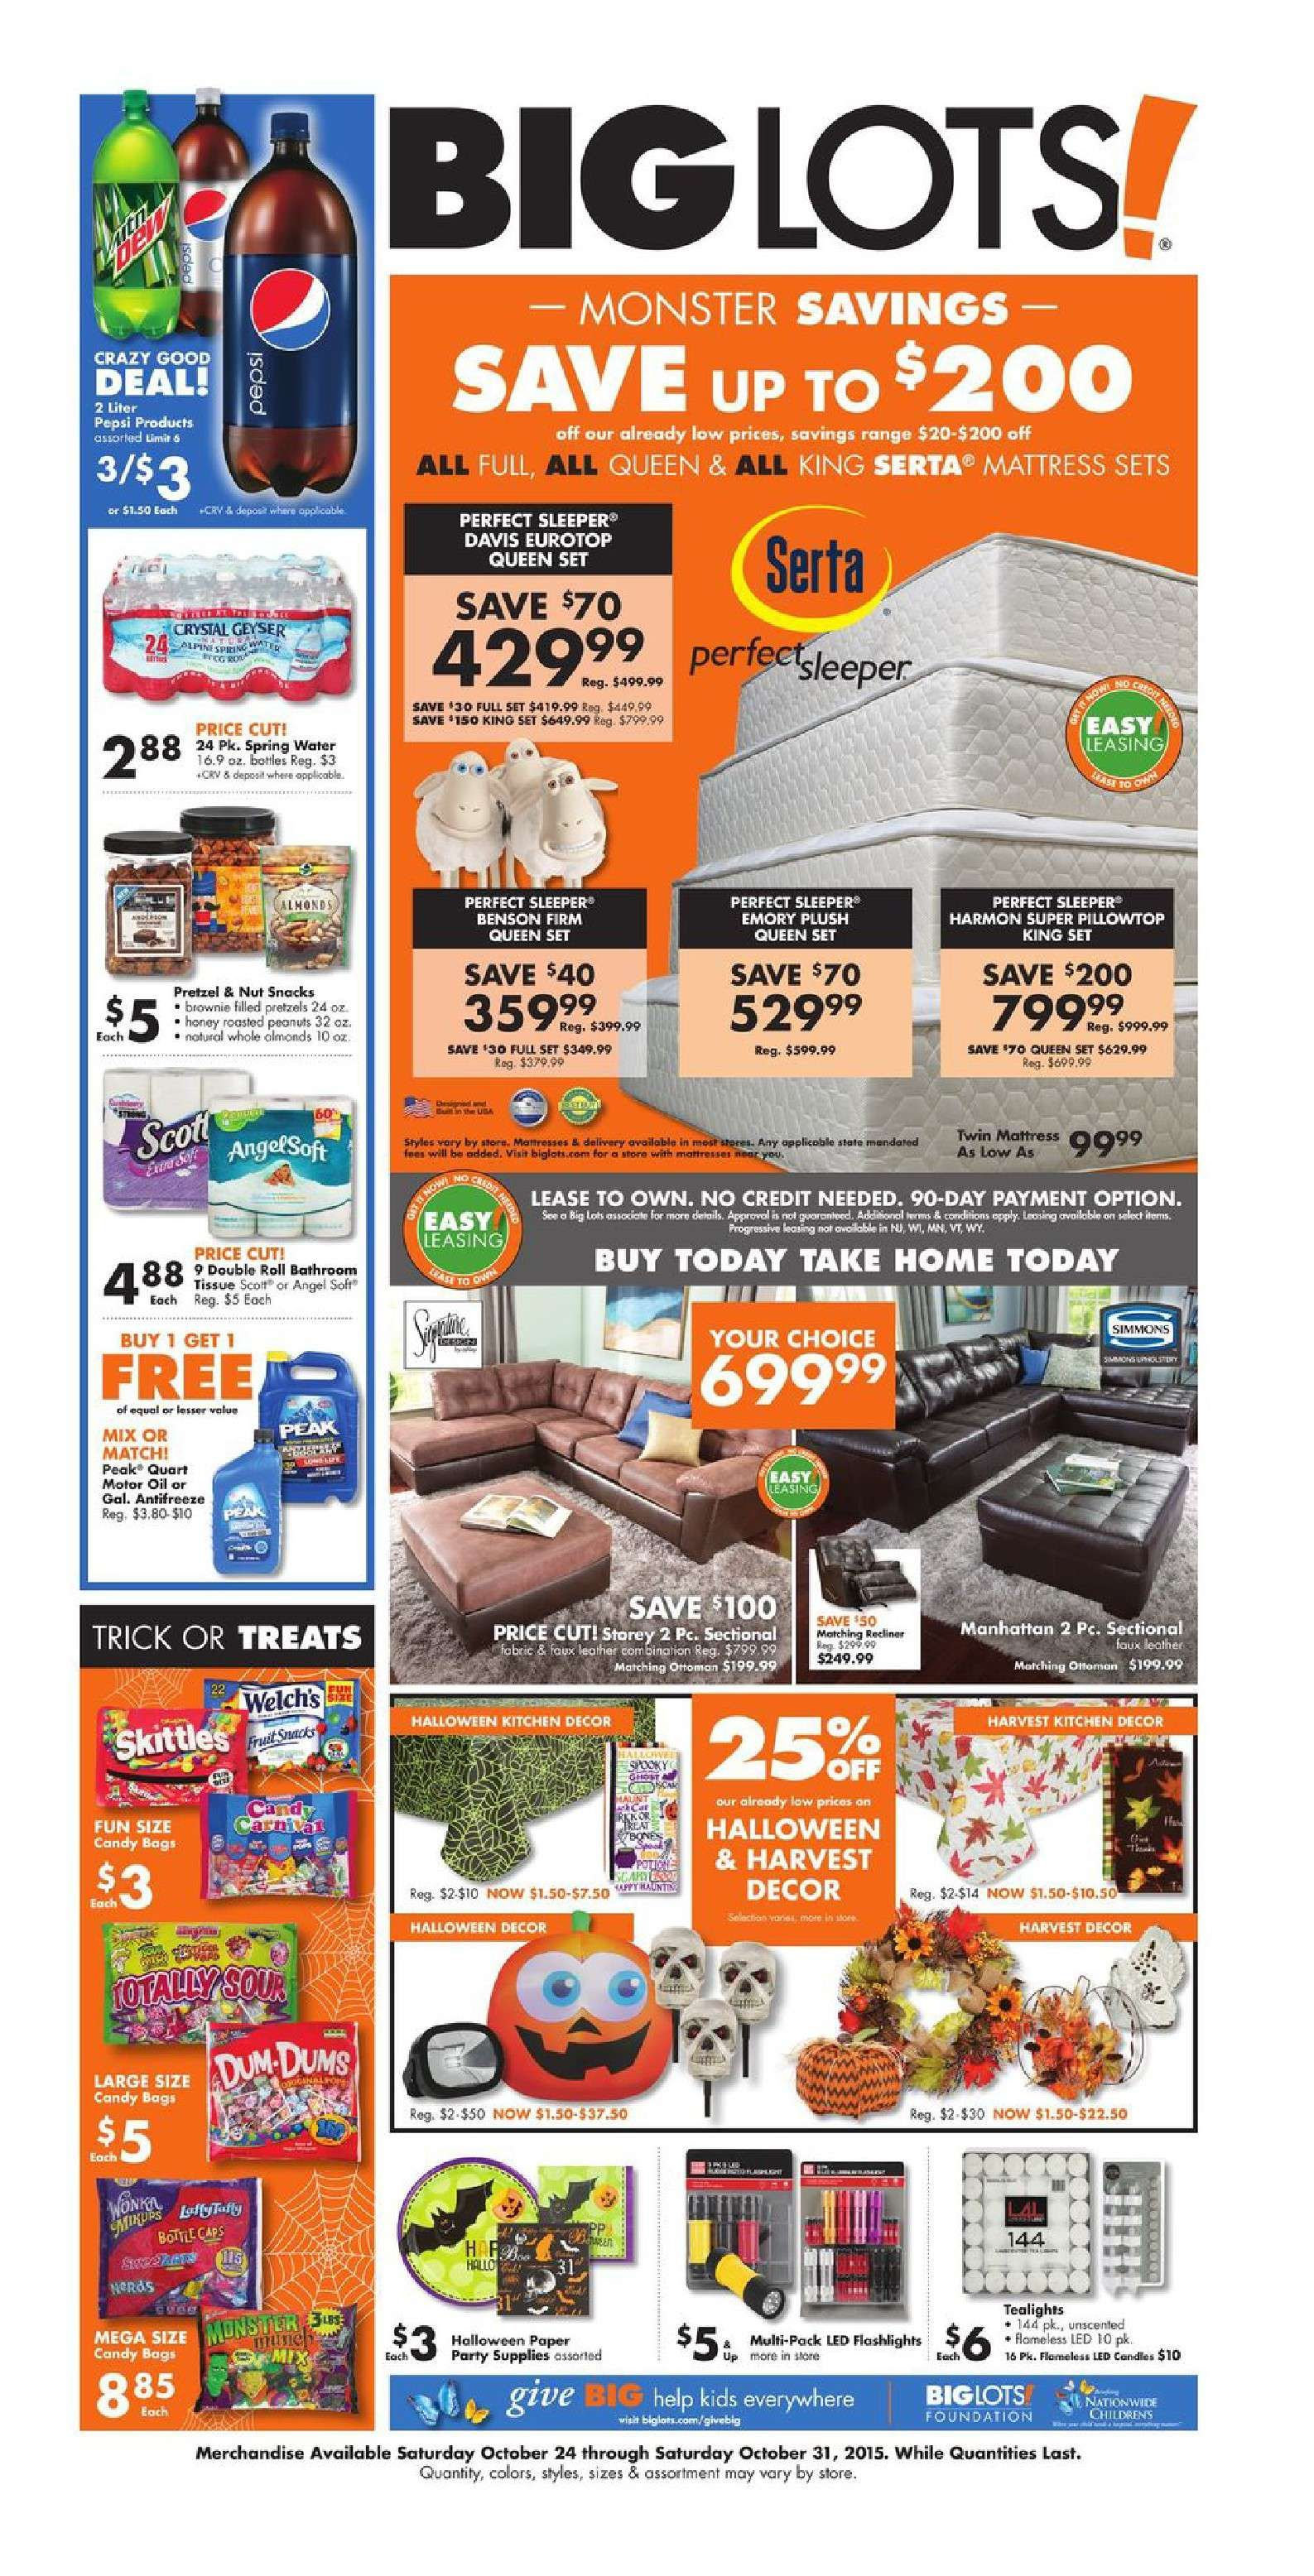 Big Lots Furniture October 24 31, 2015 http//www